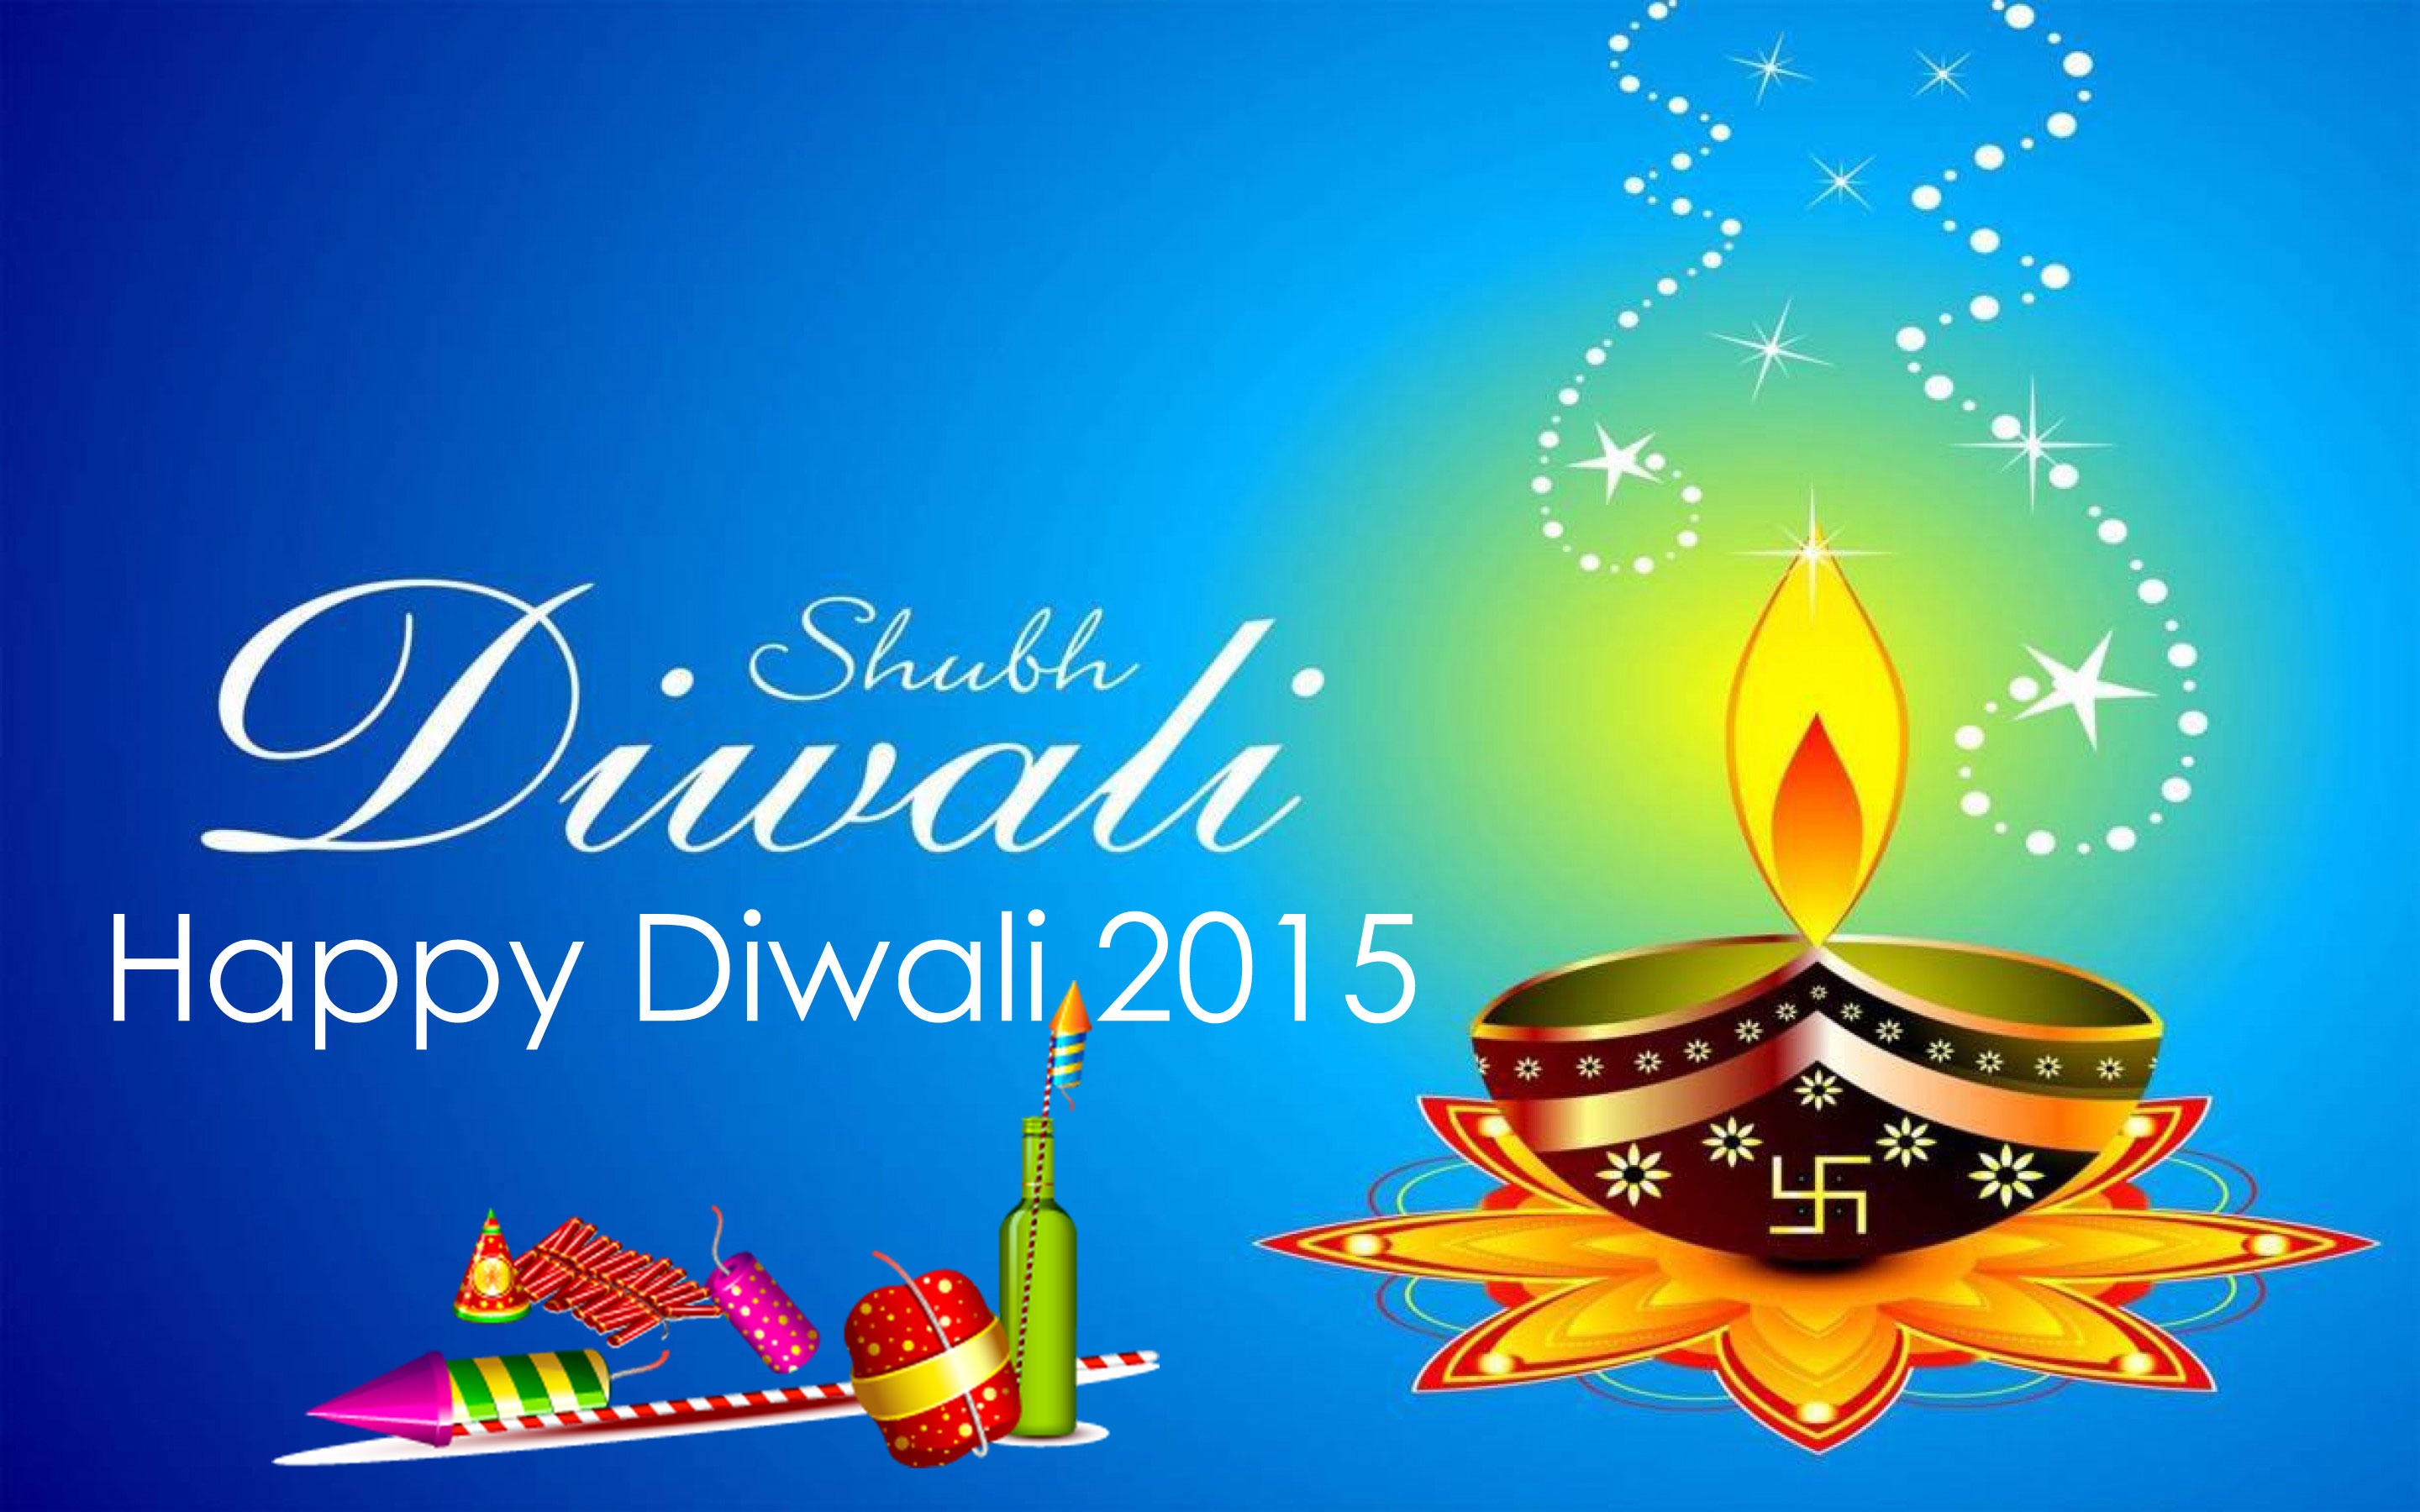 Latest Happy Diwali 2015 Wishes Messages Images Pictures Pics Photos